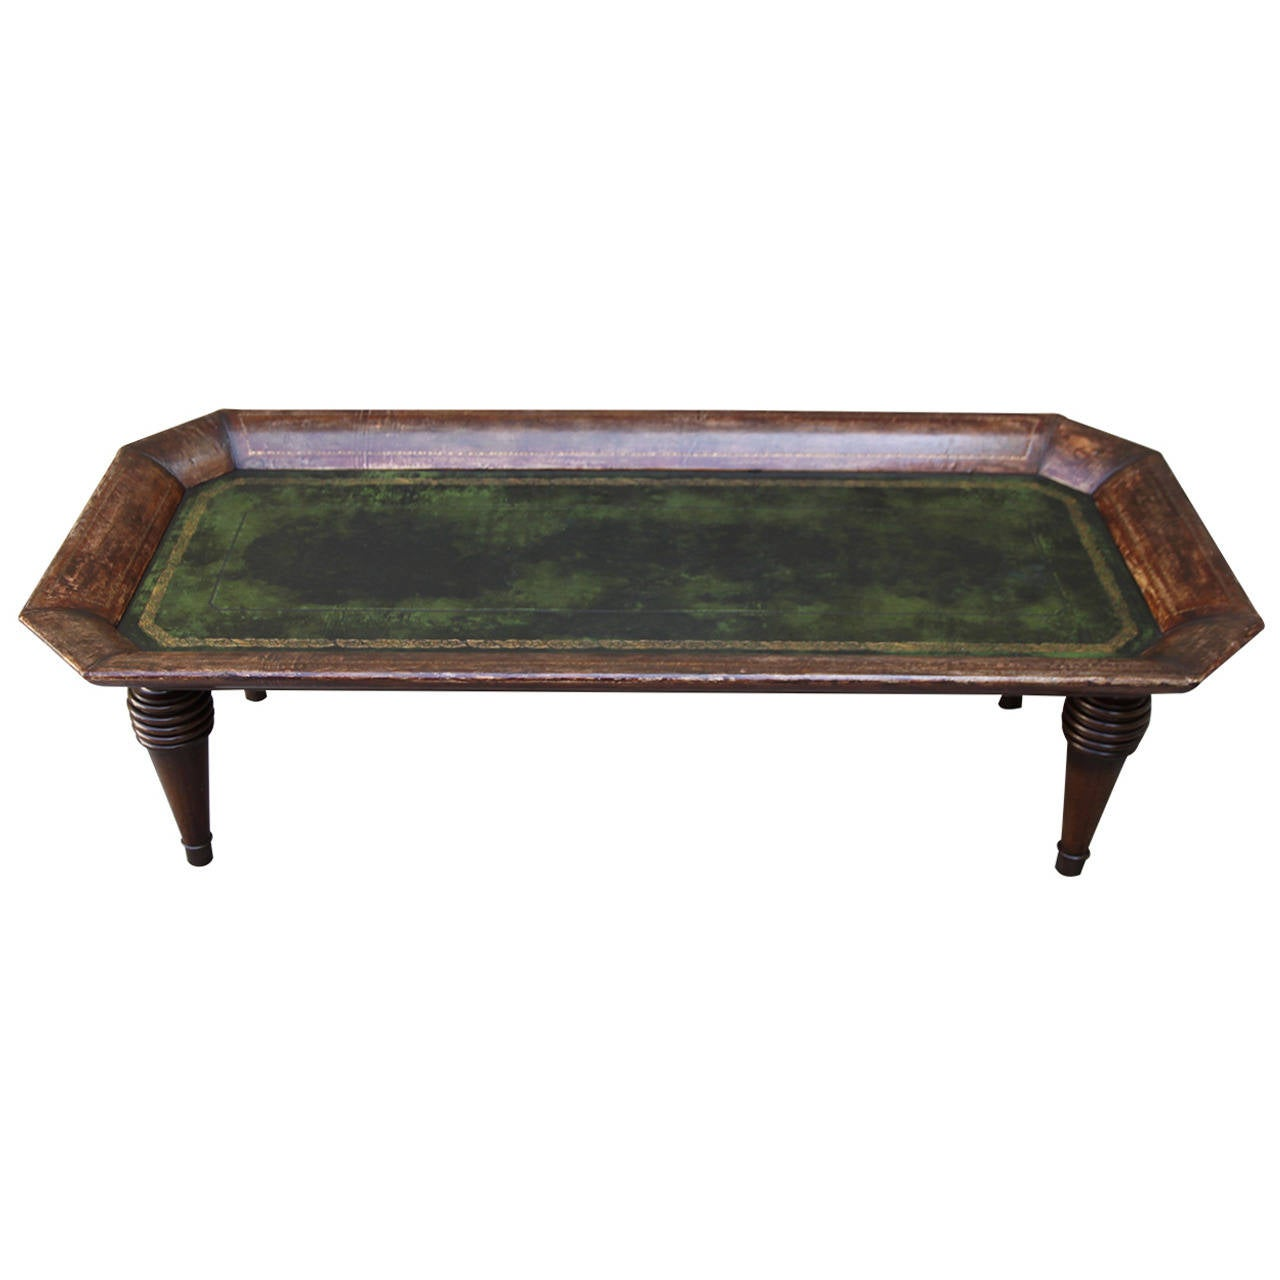 English Gold Embossed Leather Coffee Table At 1stdibs